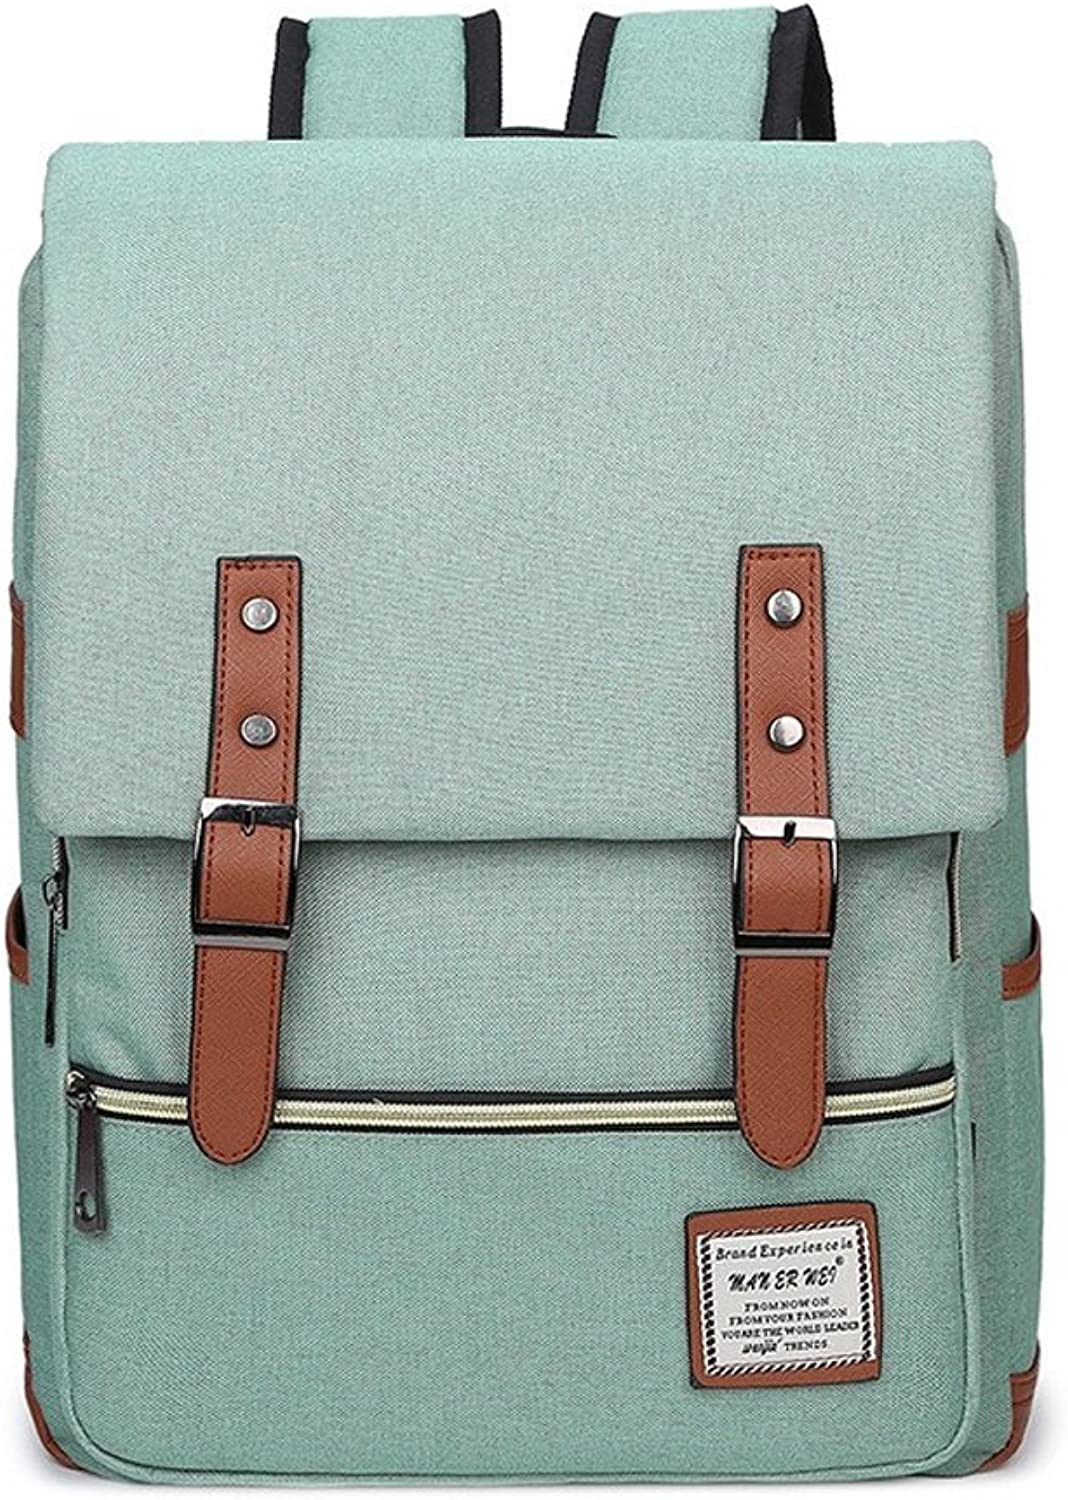 Fashion Waterproof Oxford Cloth Backpack, Breathable Women Men Travel Rucksack Ultra Light Hiking Mountaineering Backpack Durable Riding Laptop Backpack Unisex School Bag (Design   C)